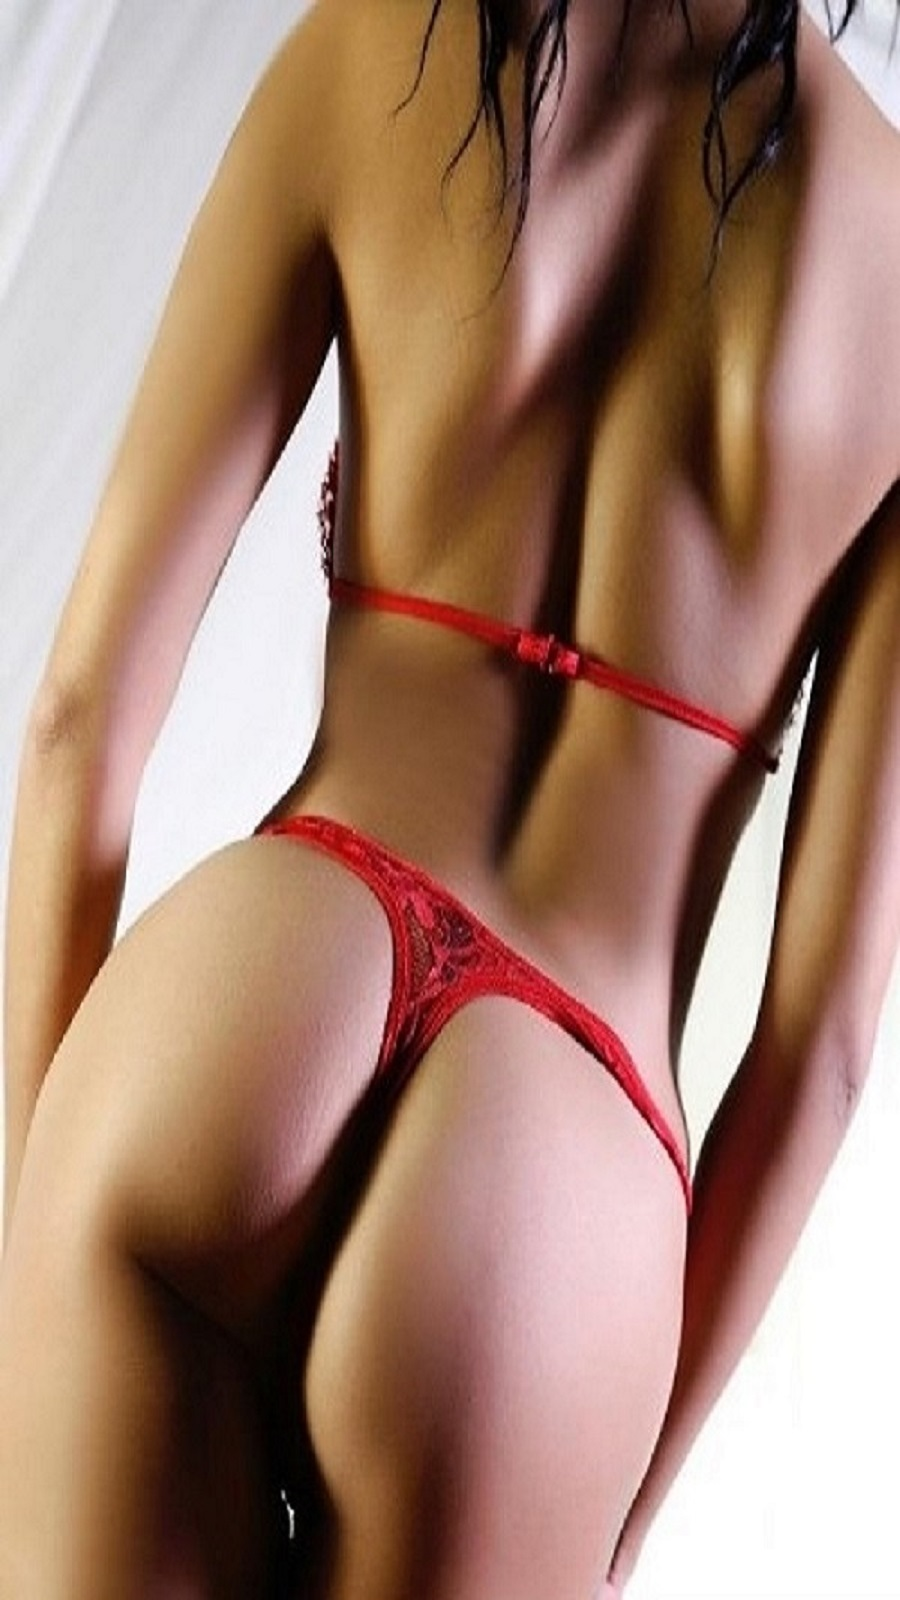 If you are looking for the perfect companion tonight give us a call on 07402724742 to book Leah for the best night of your life.